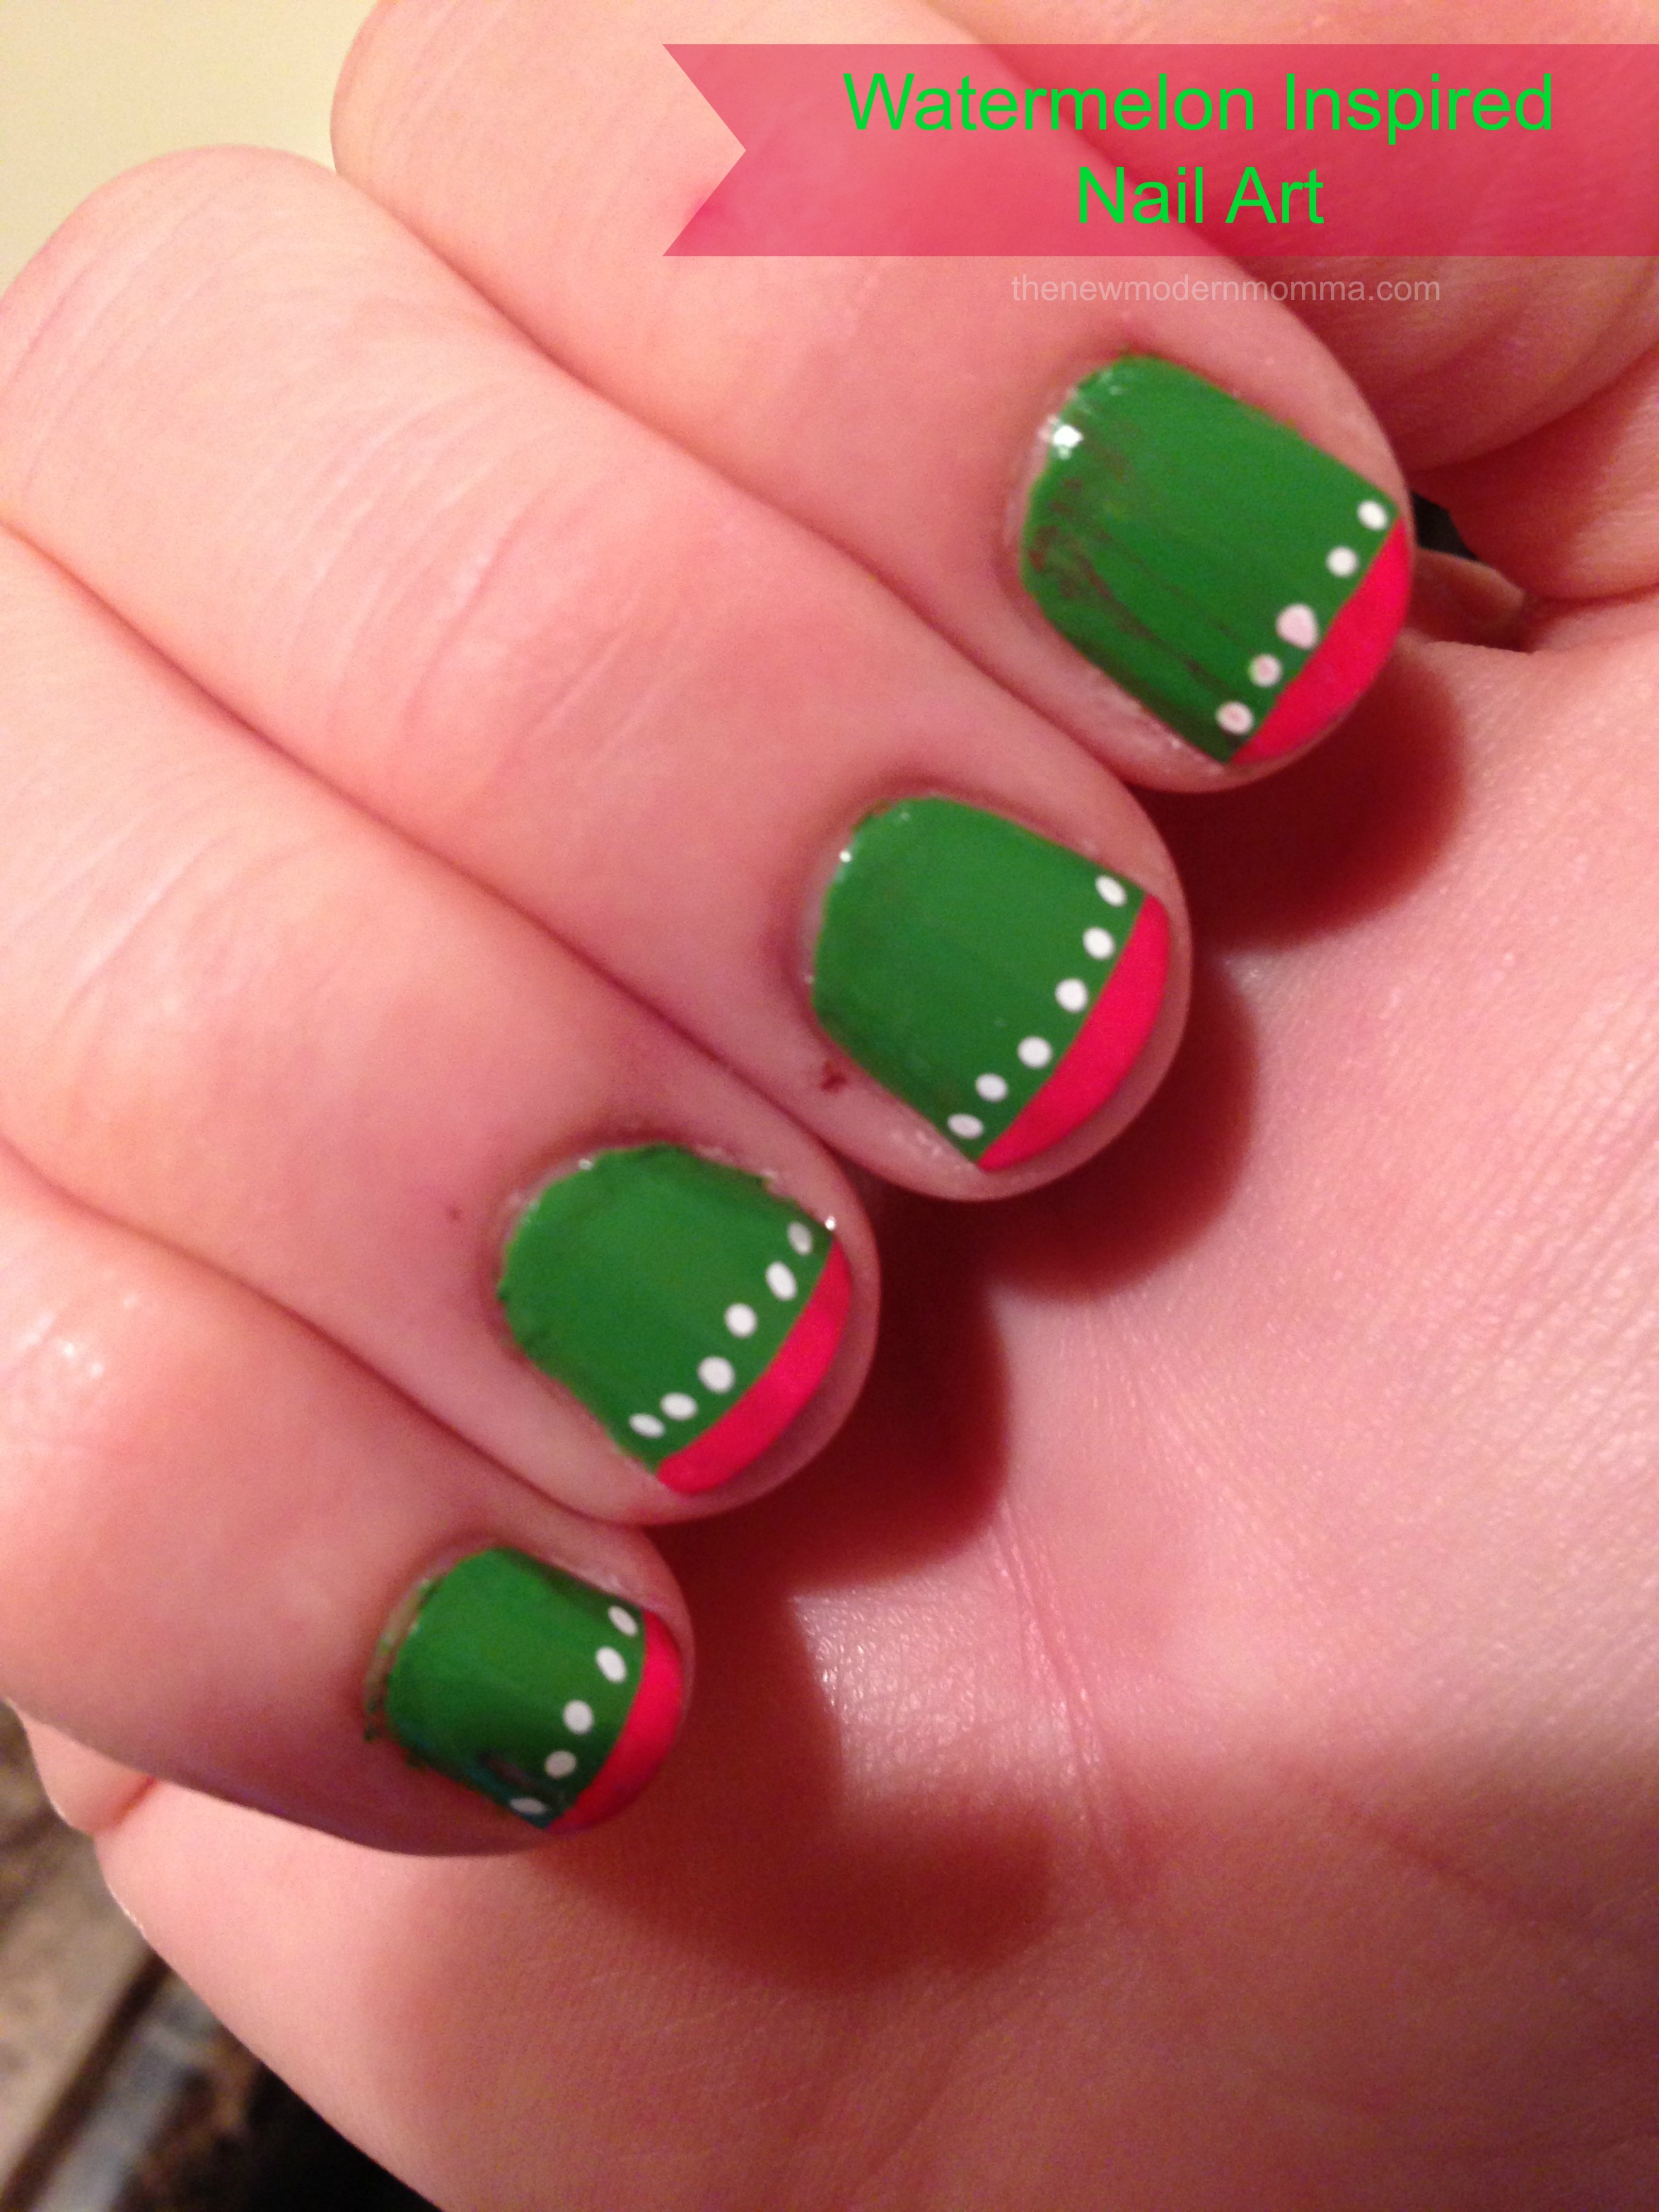 Watermelon Inspired Nail Art Iheartmynailart The New Modern Momma